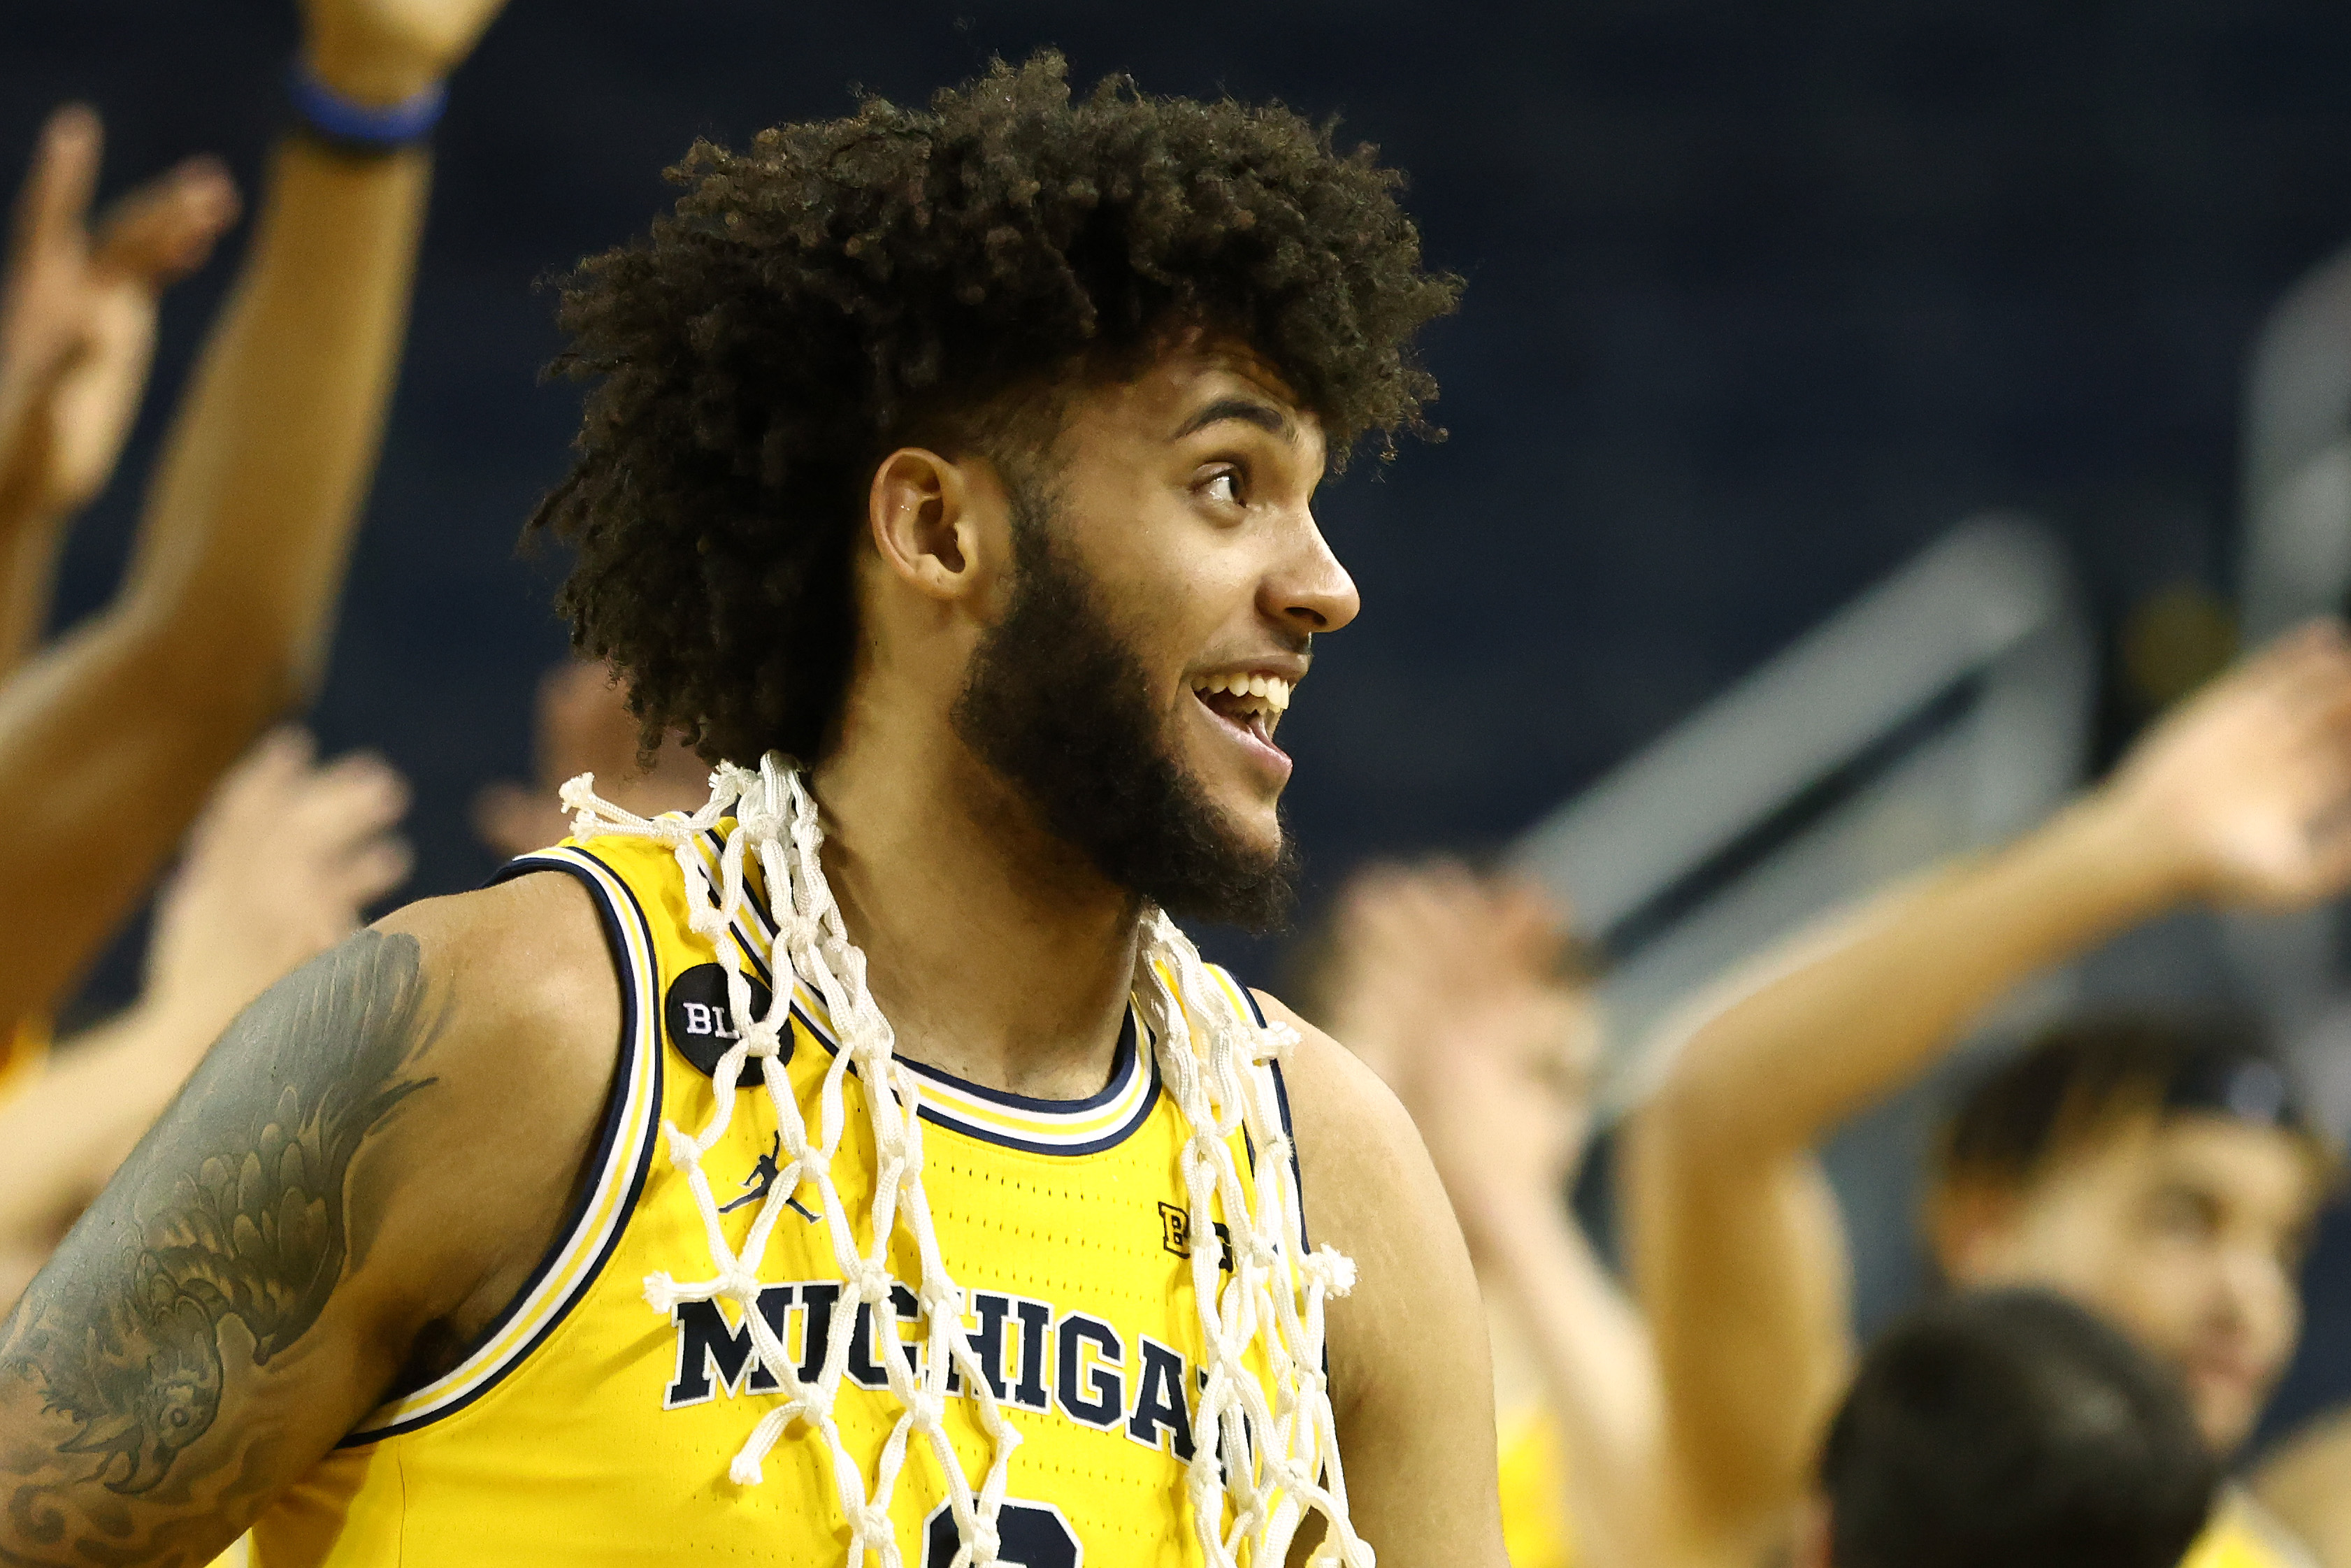 Isaiah Livers #2 of the Michigan Wolverines celebrates senior night and a Big Ten championship after defeating the Michigan State Spartans 69-50 at Crisler Arena on March 04, 2021 in Ann Arbor, Michigan.